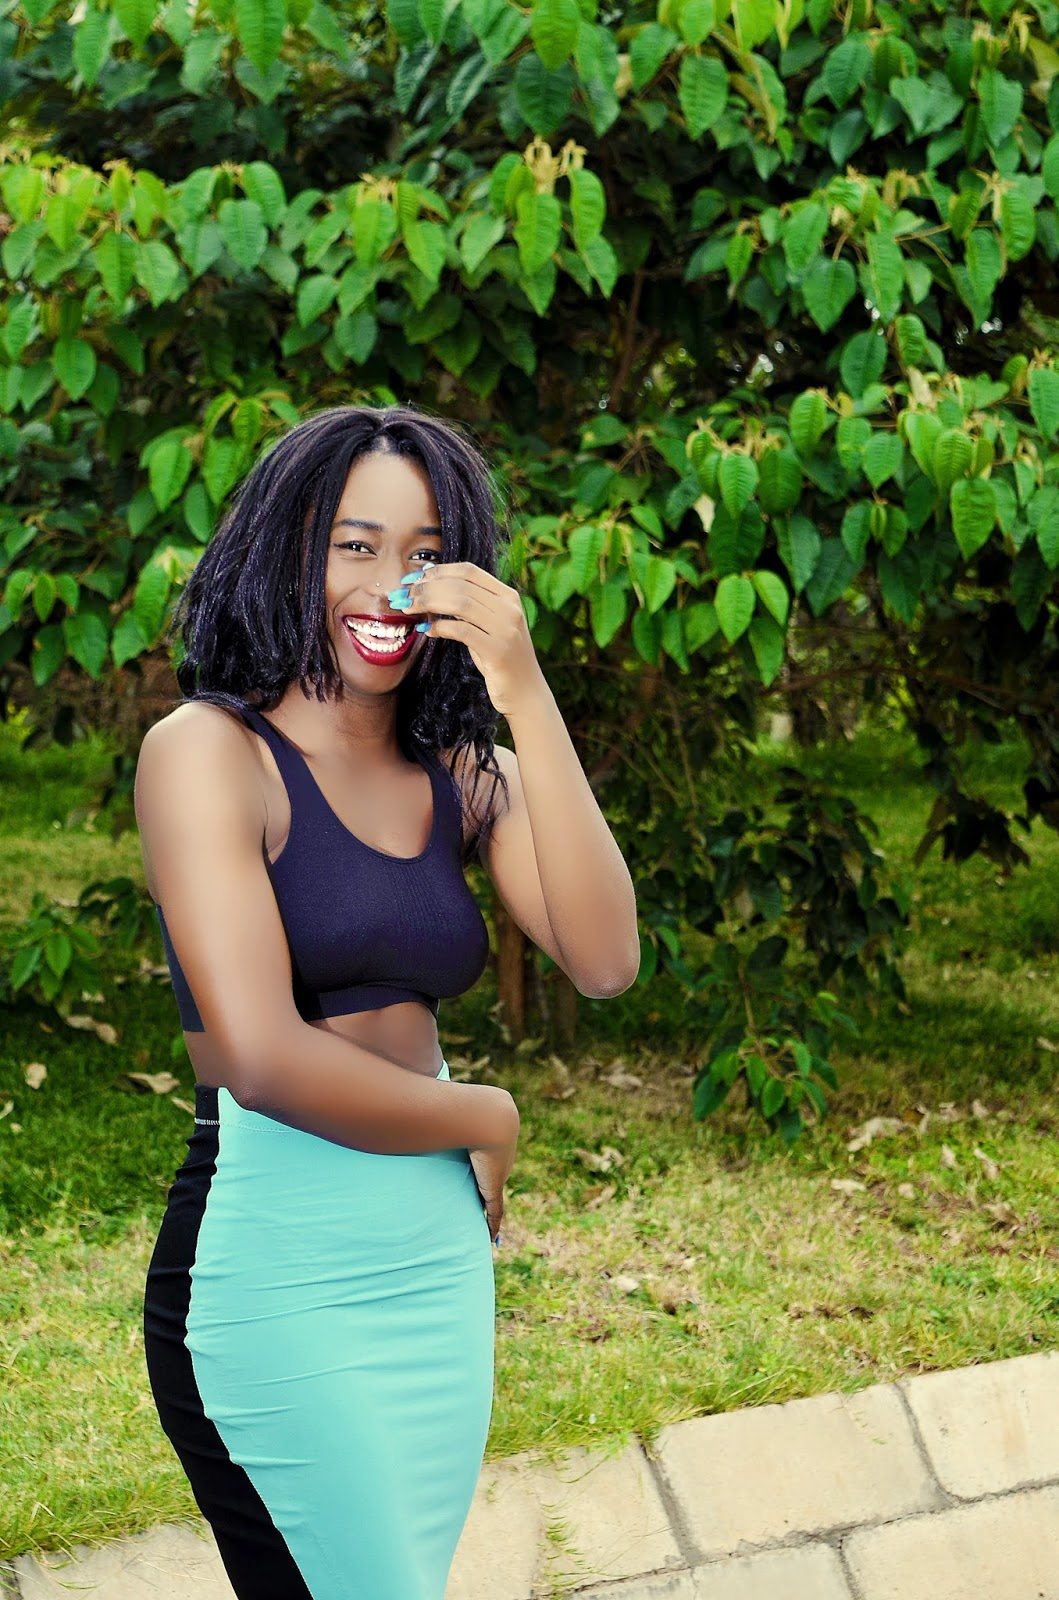 Ezil, style with ezil, diffrence between sporty and active wear, shopping guidlines for sporty wear, sports bra, casual active wear, pencil skirt, look sexy in active wear, kenyan fashion blogger, African fashion blogger, what to wear Kenya